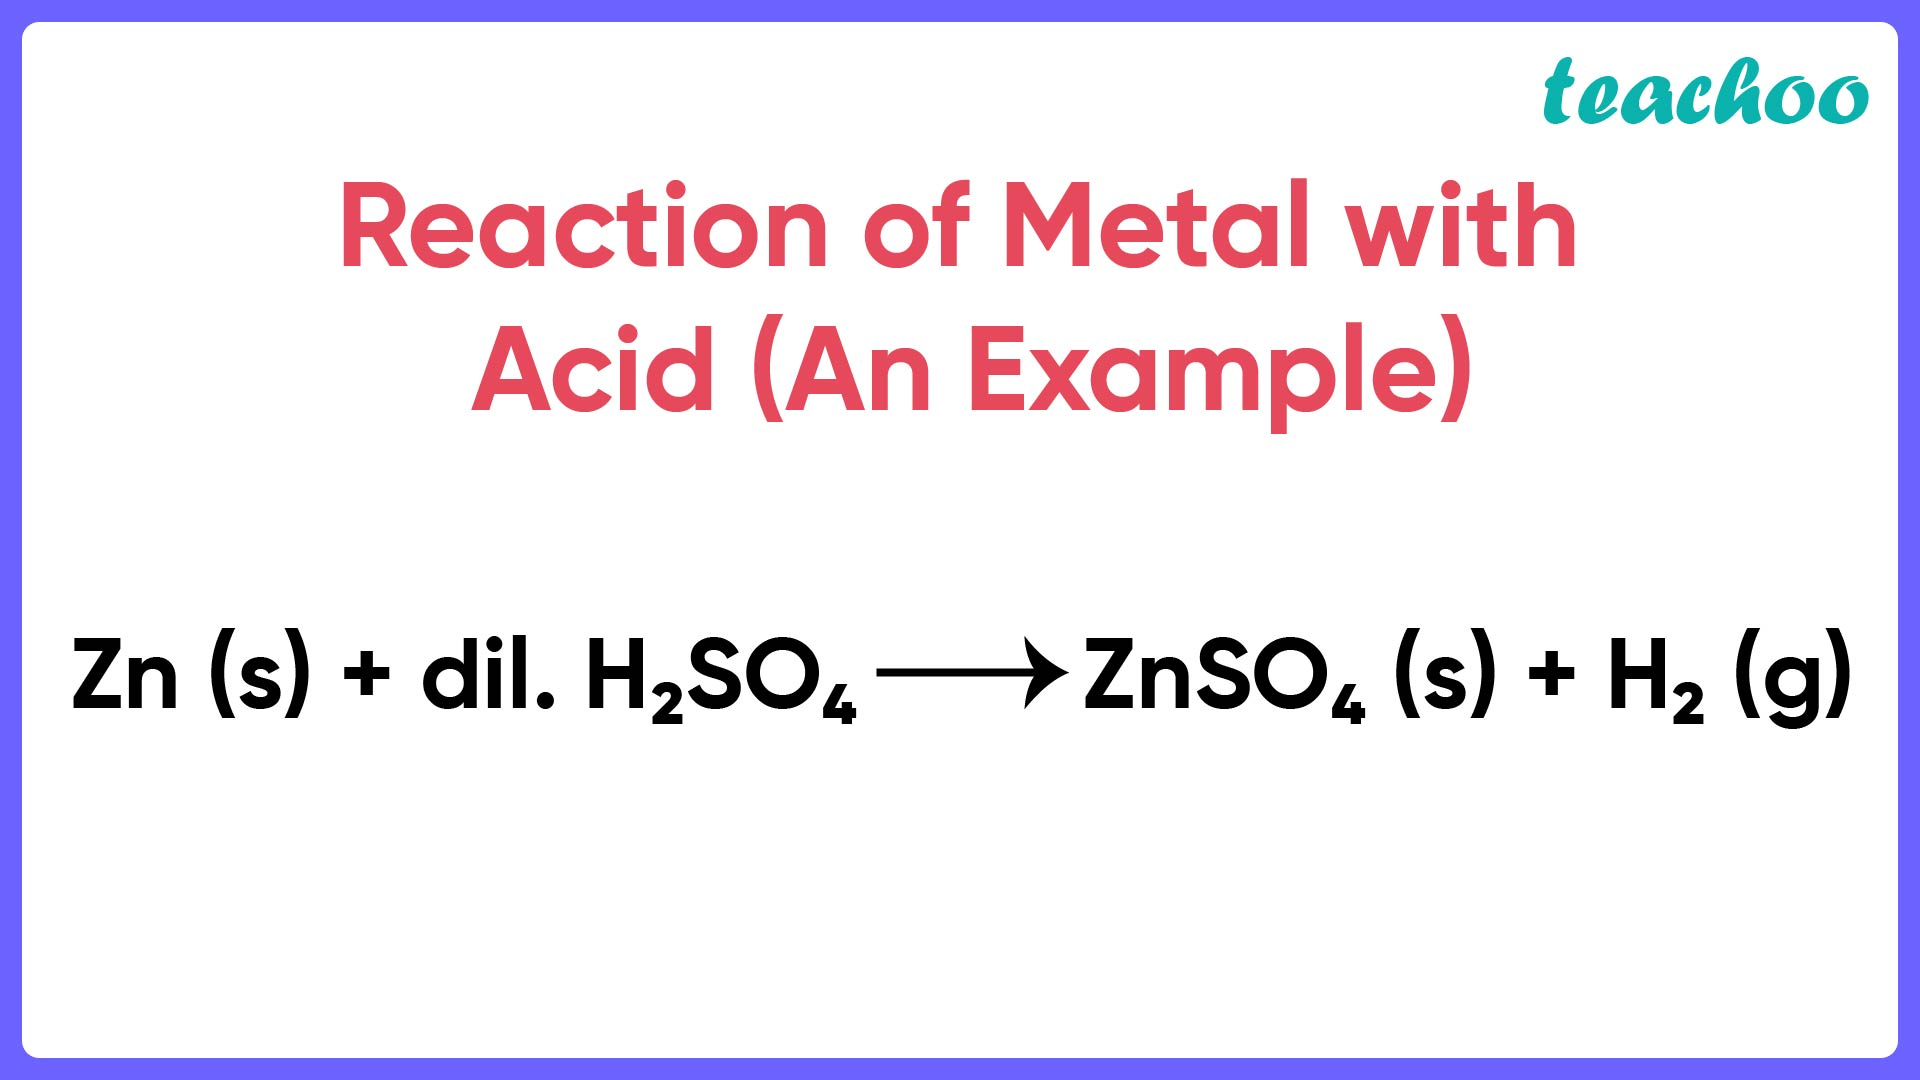 Reaction of Metal with Acid (An Example).jpg